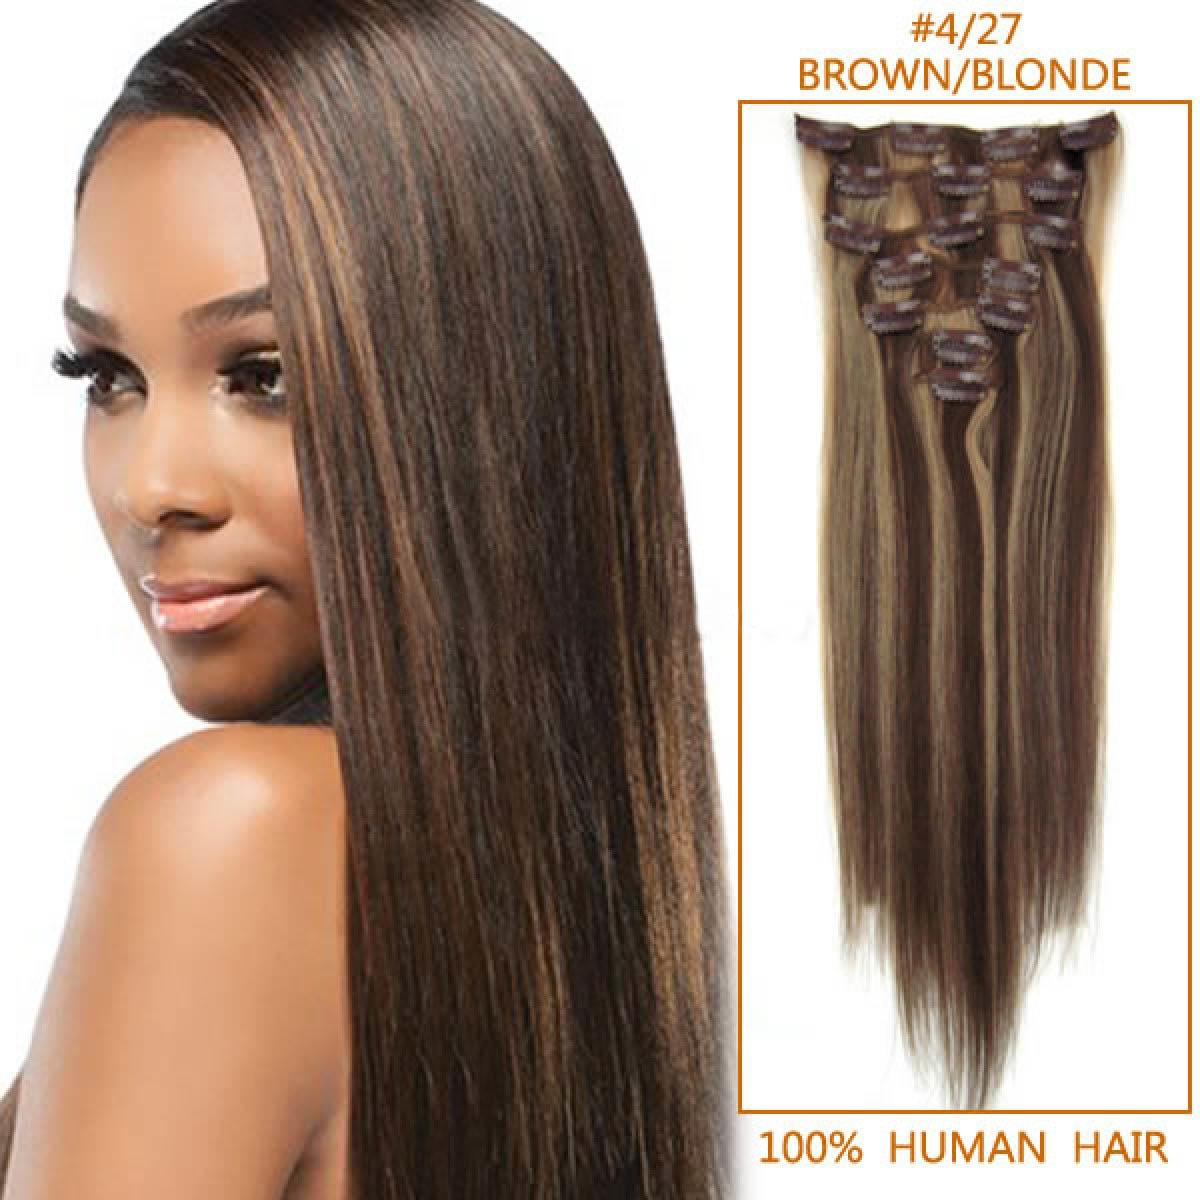 The Best 26 Inch 4 27 Brown Blonde Clip In Remy Human Hair Pictures